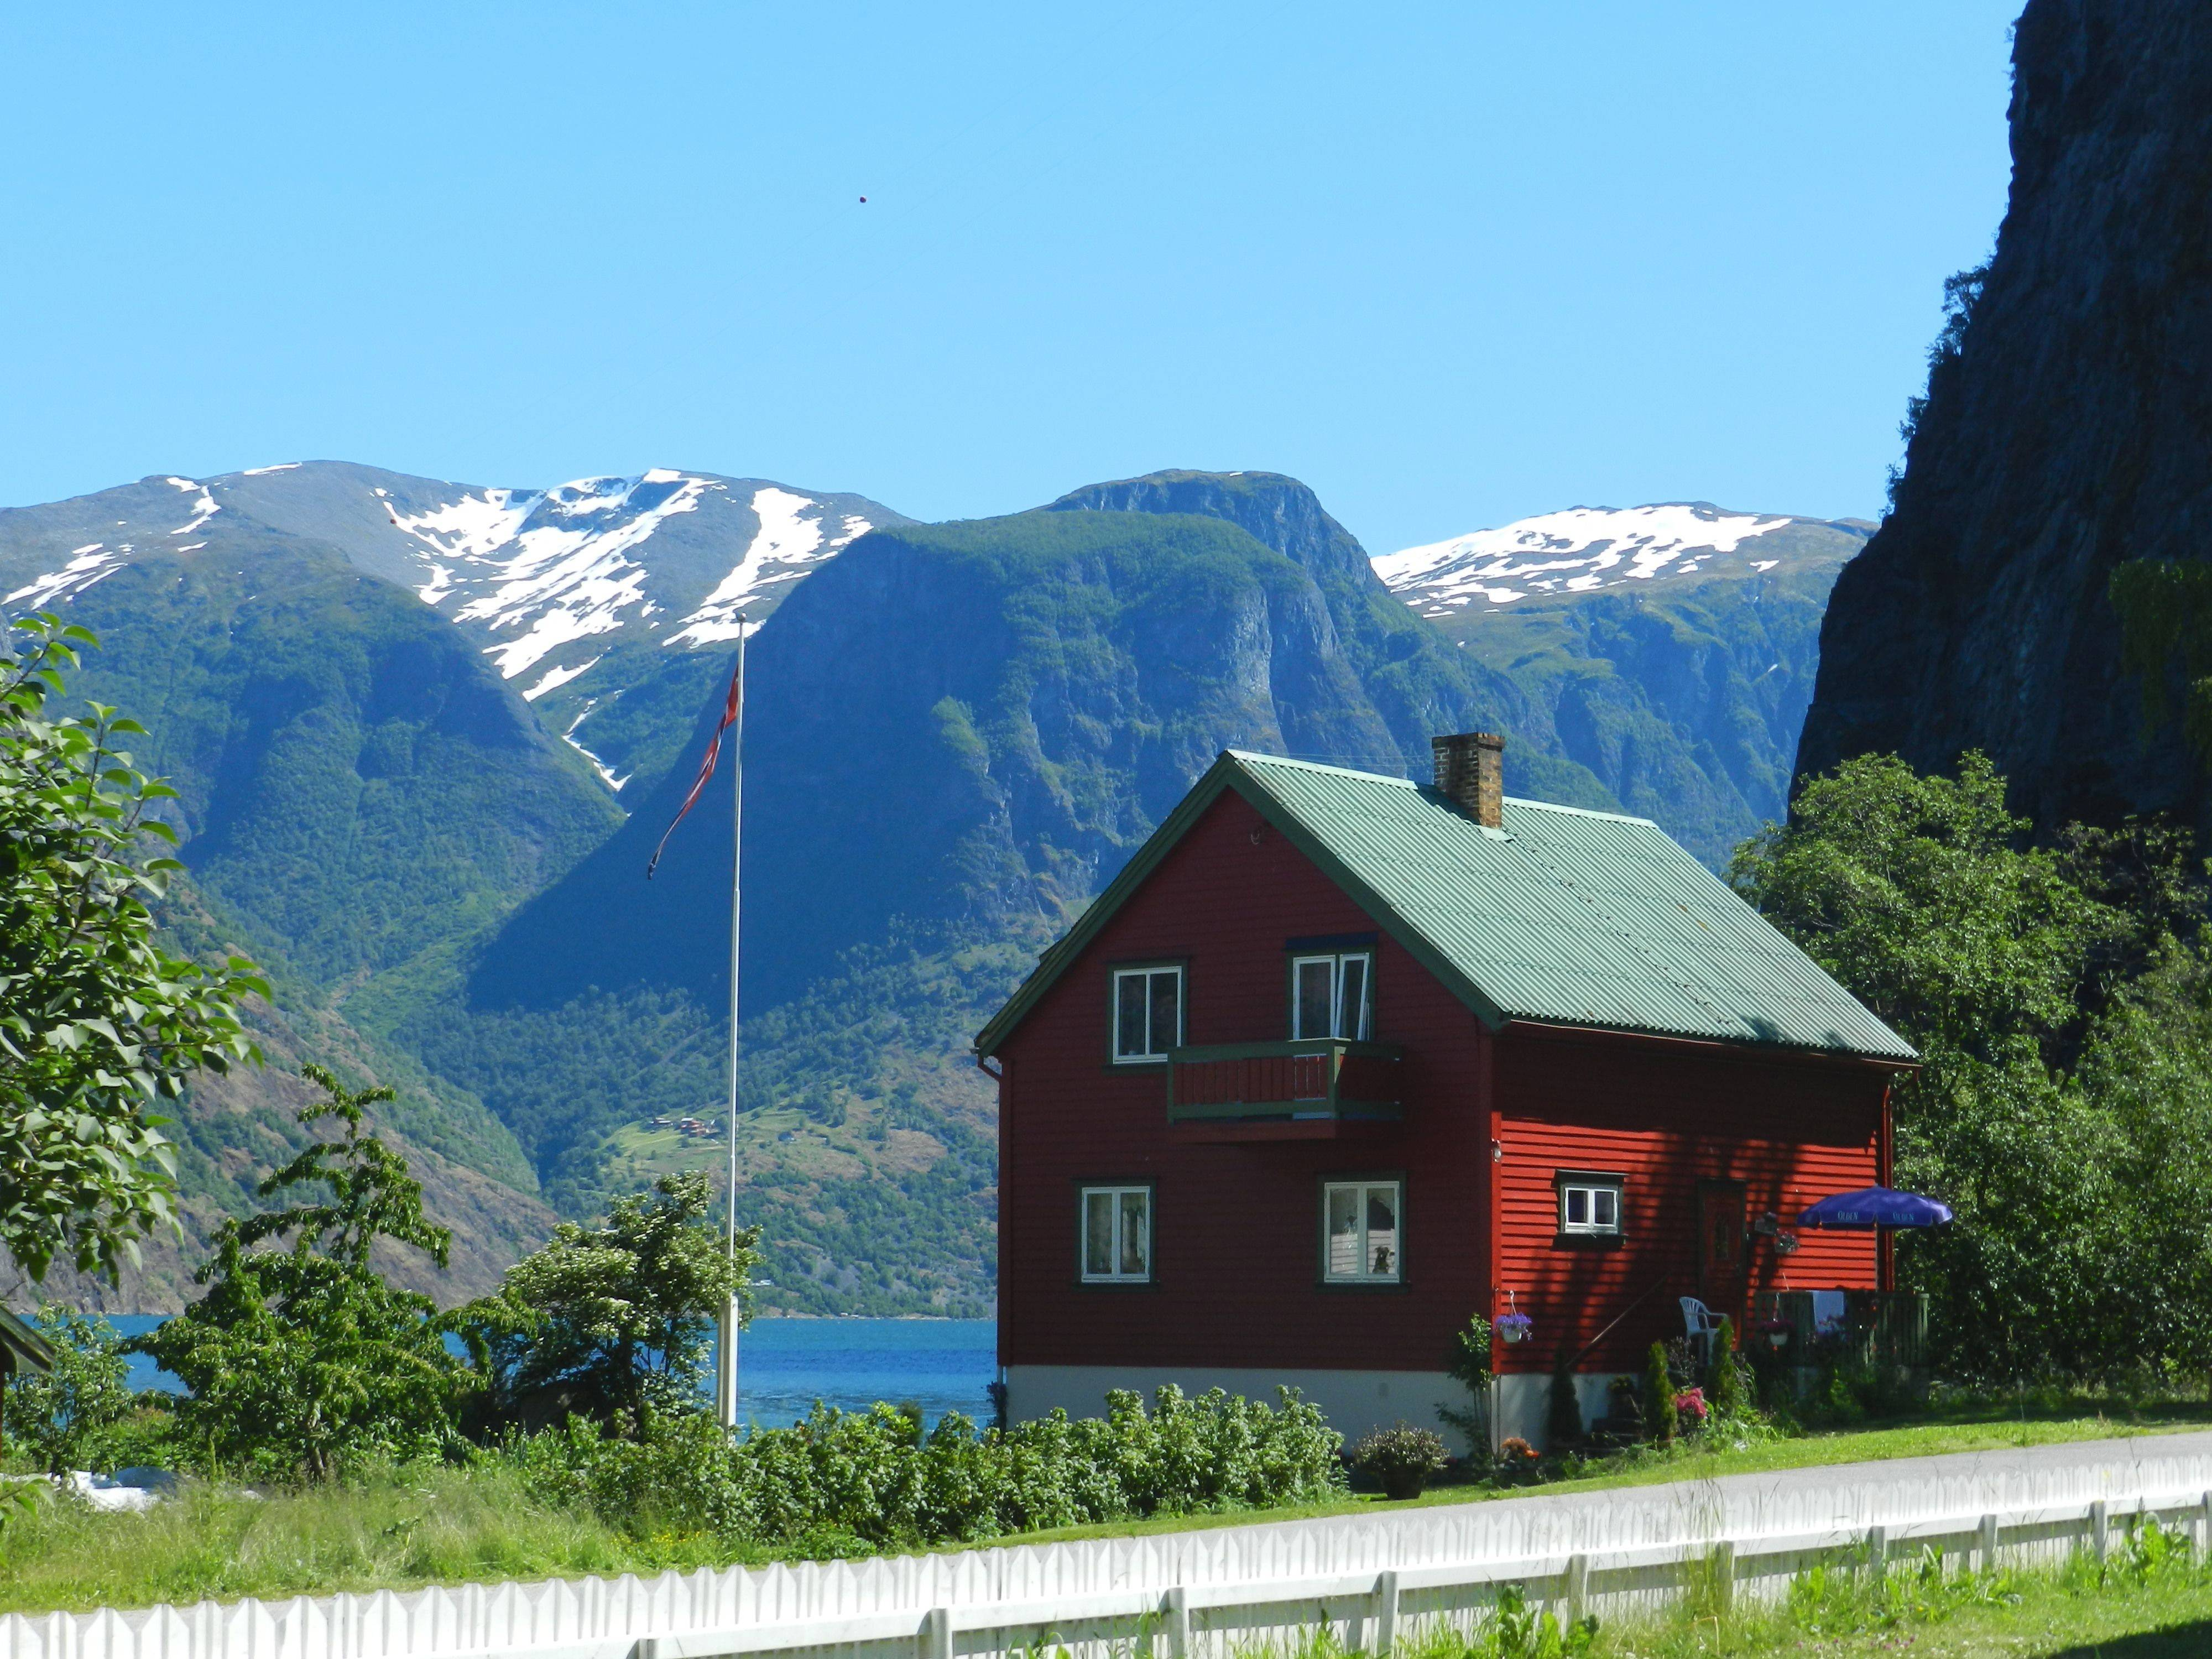 The tiny village of Undredal, population 63, nestled among the fjords of Norway.